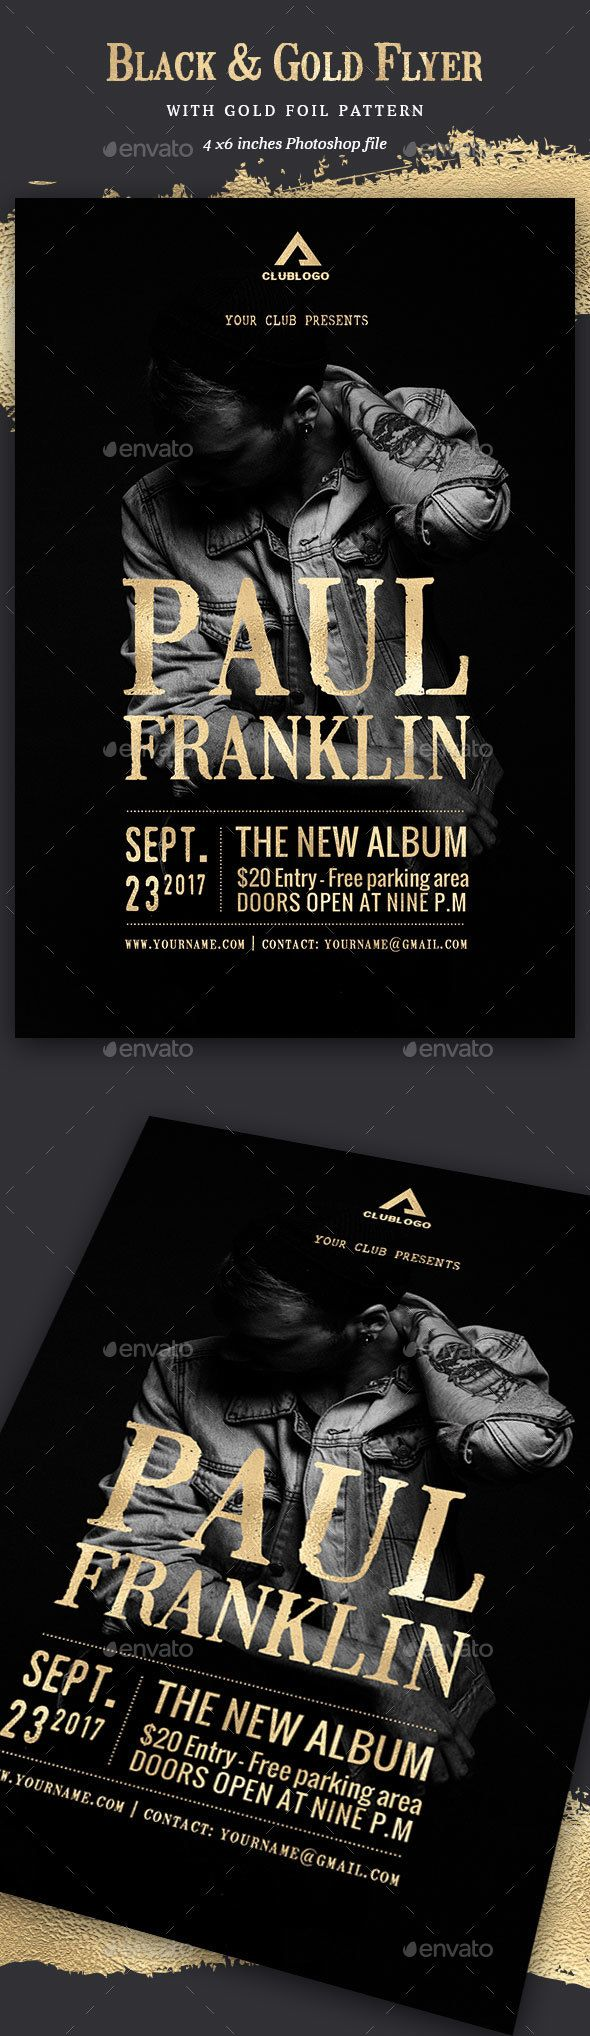 Gold  Black Flyer  Event Flyers Flyer Template And Concert Flyer